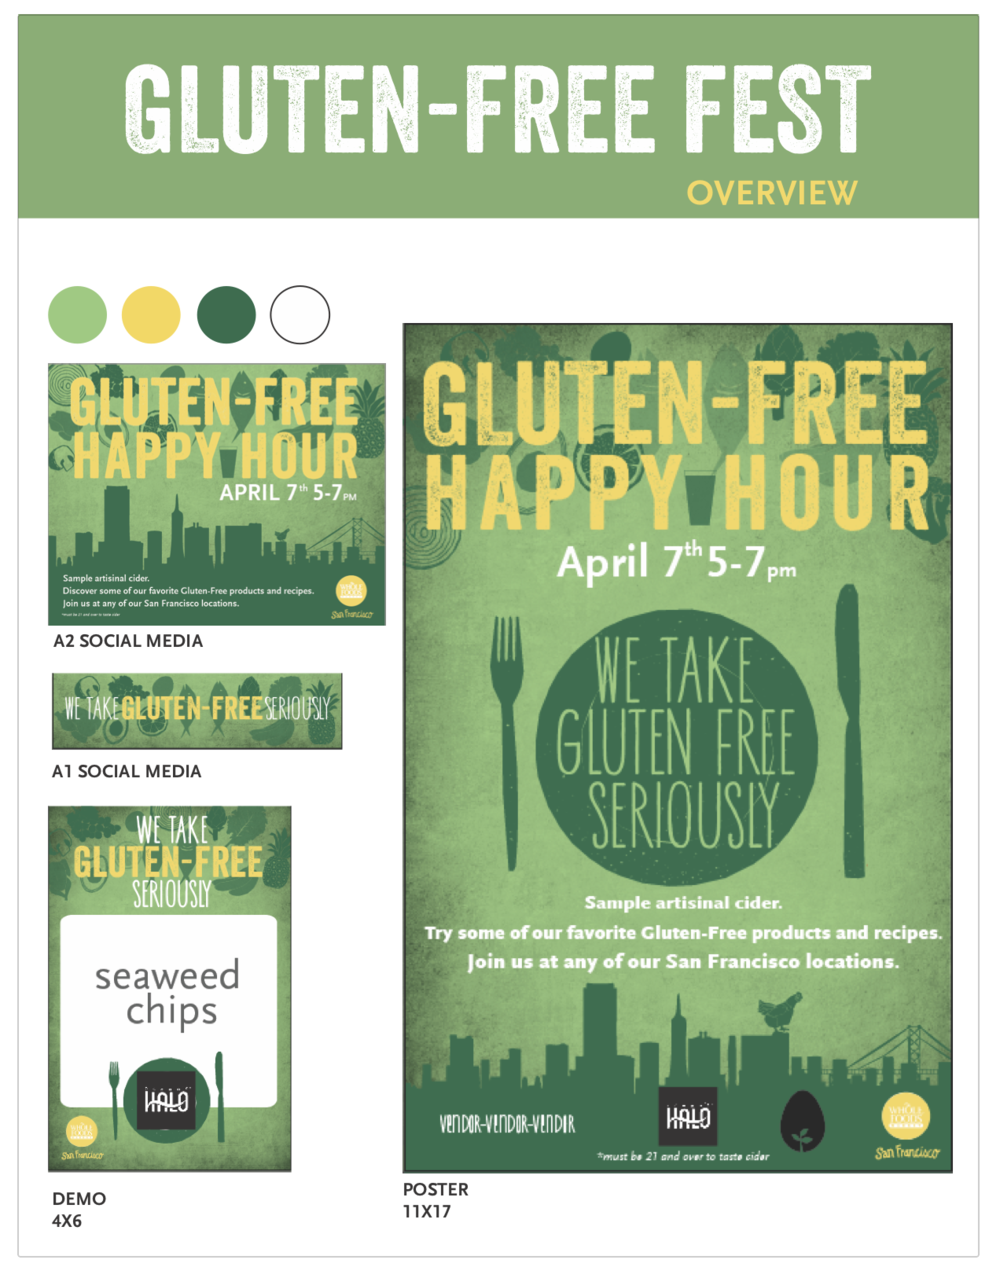 client: Whole Foods Market - in-store signage for city wide event